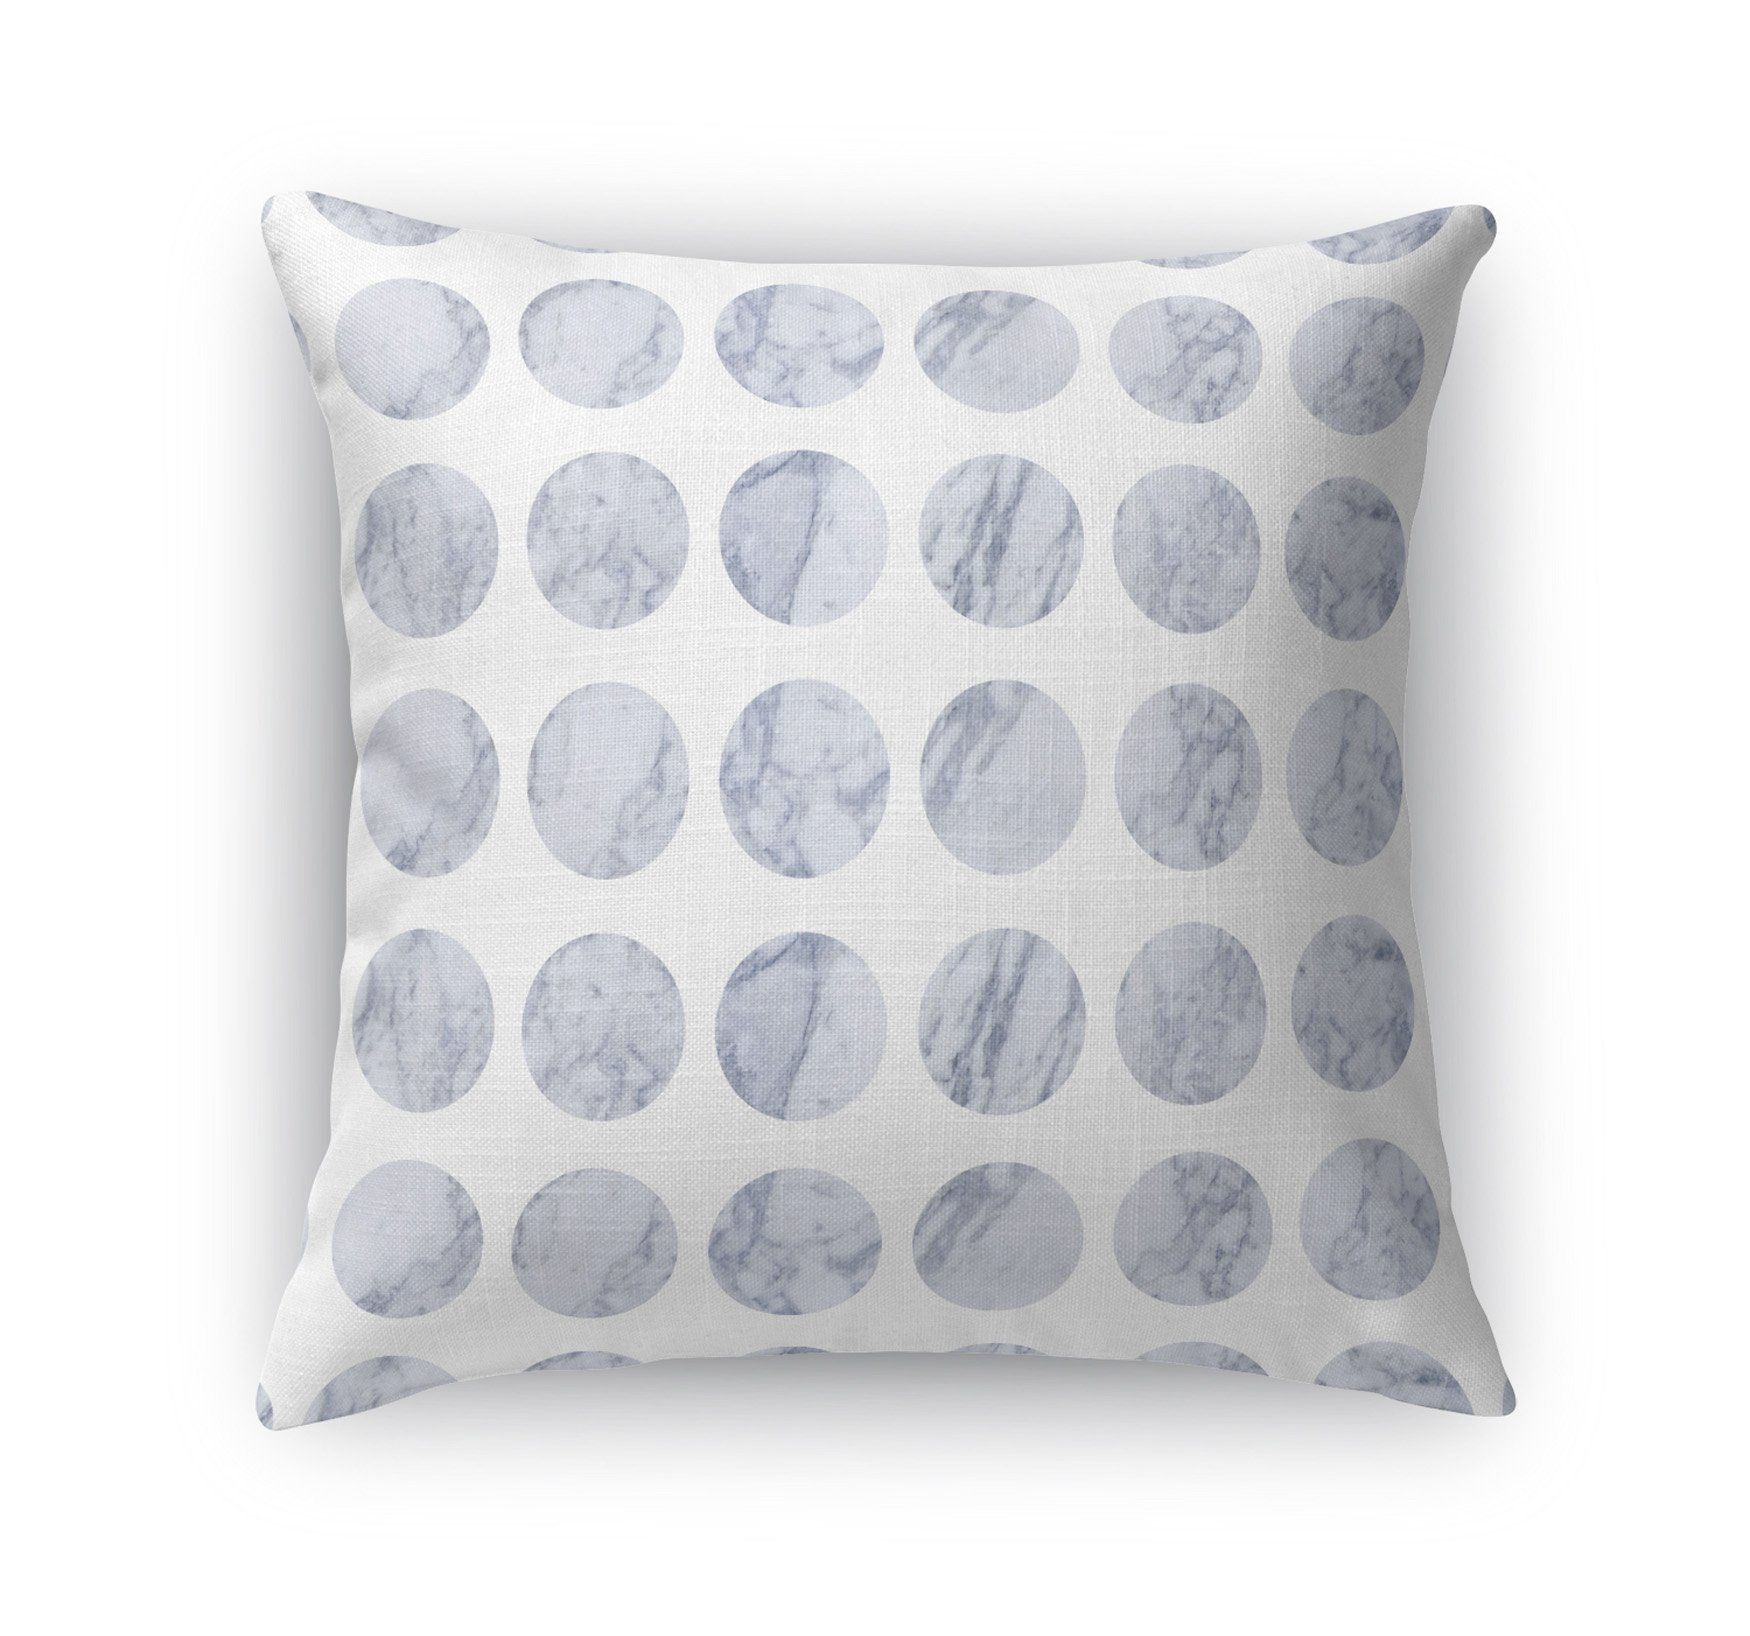 FAT DOT WHITE MARBLE Accent Pillow By Jackii Greener - 26in x 26in